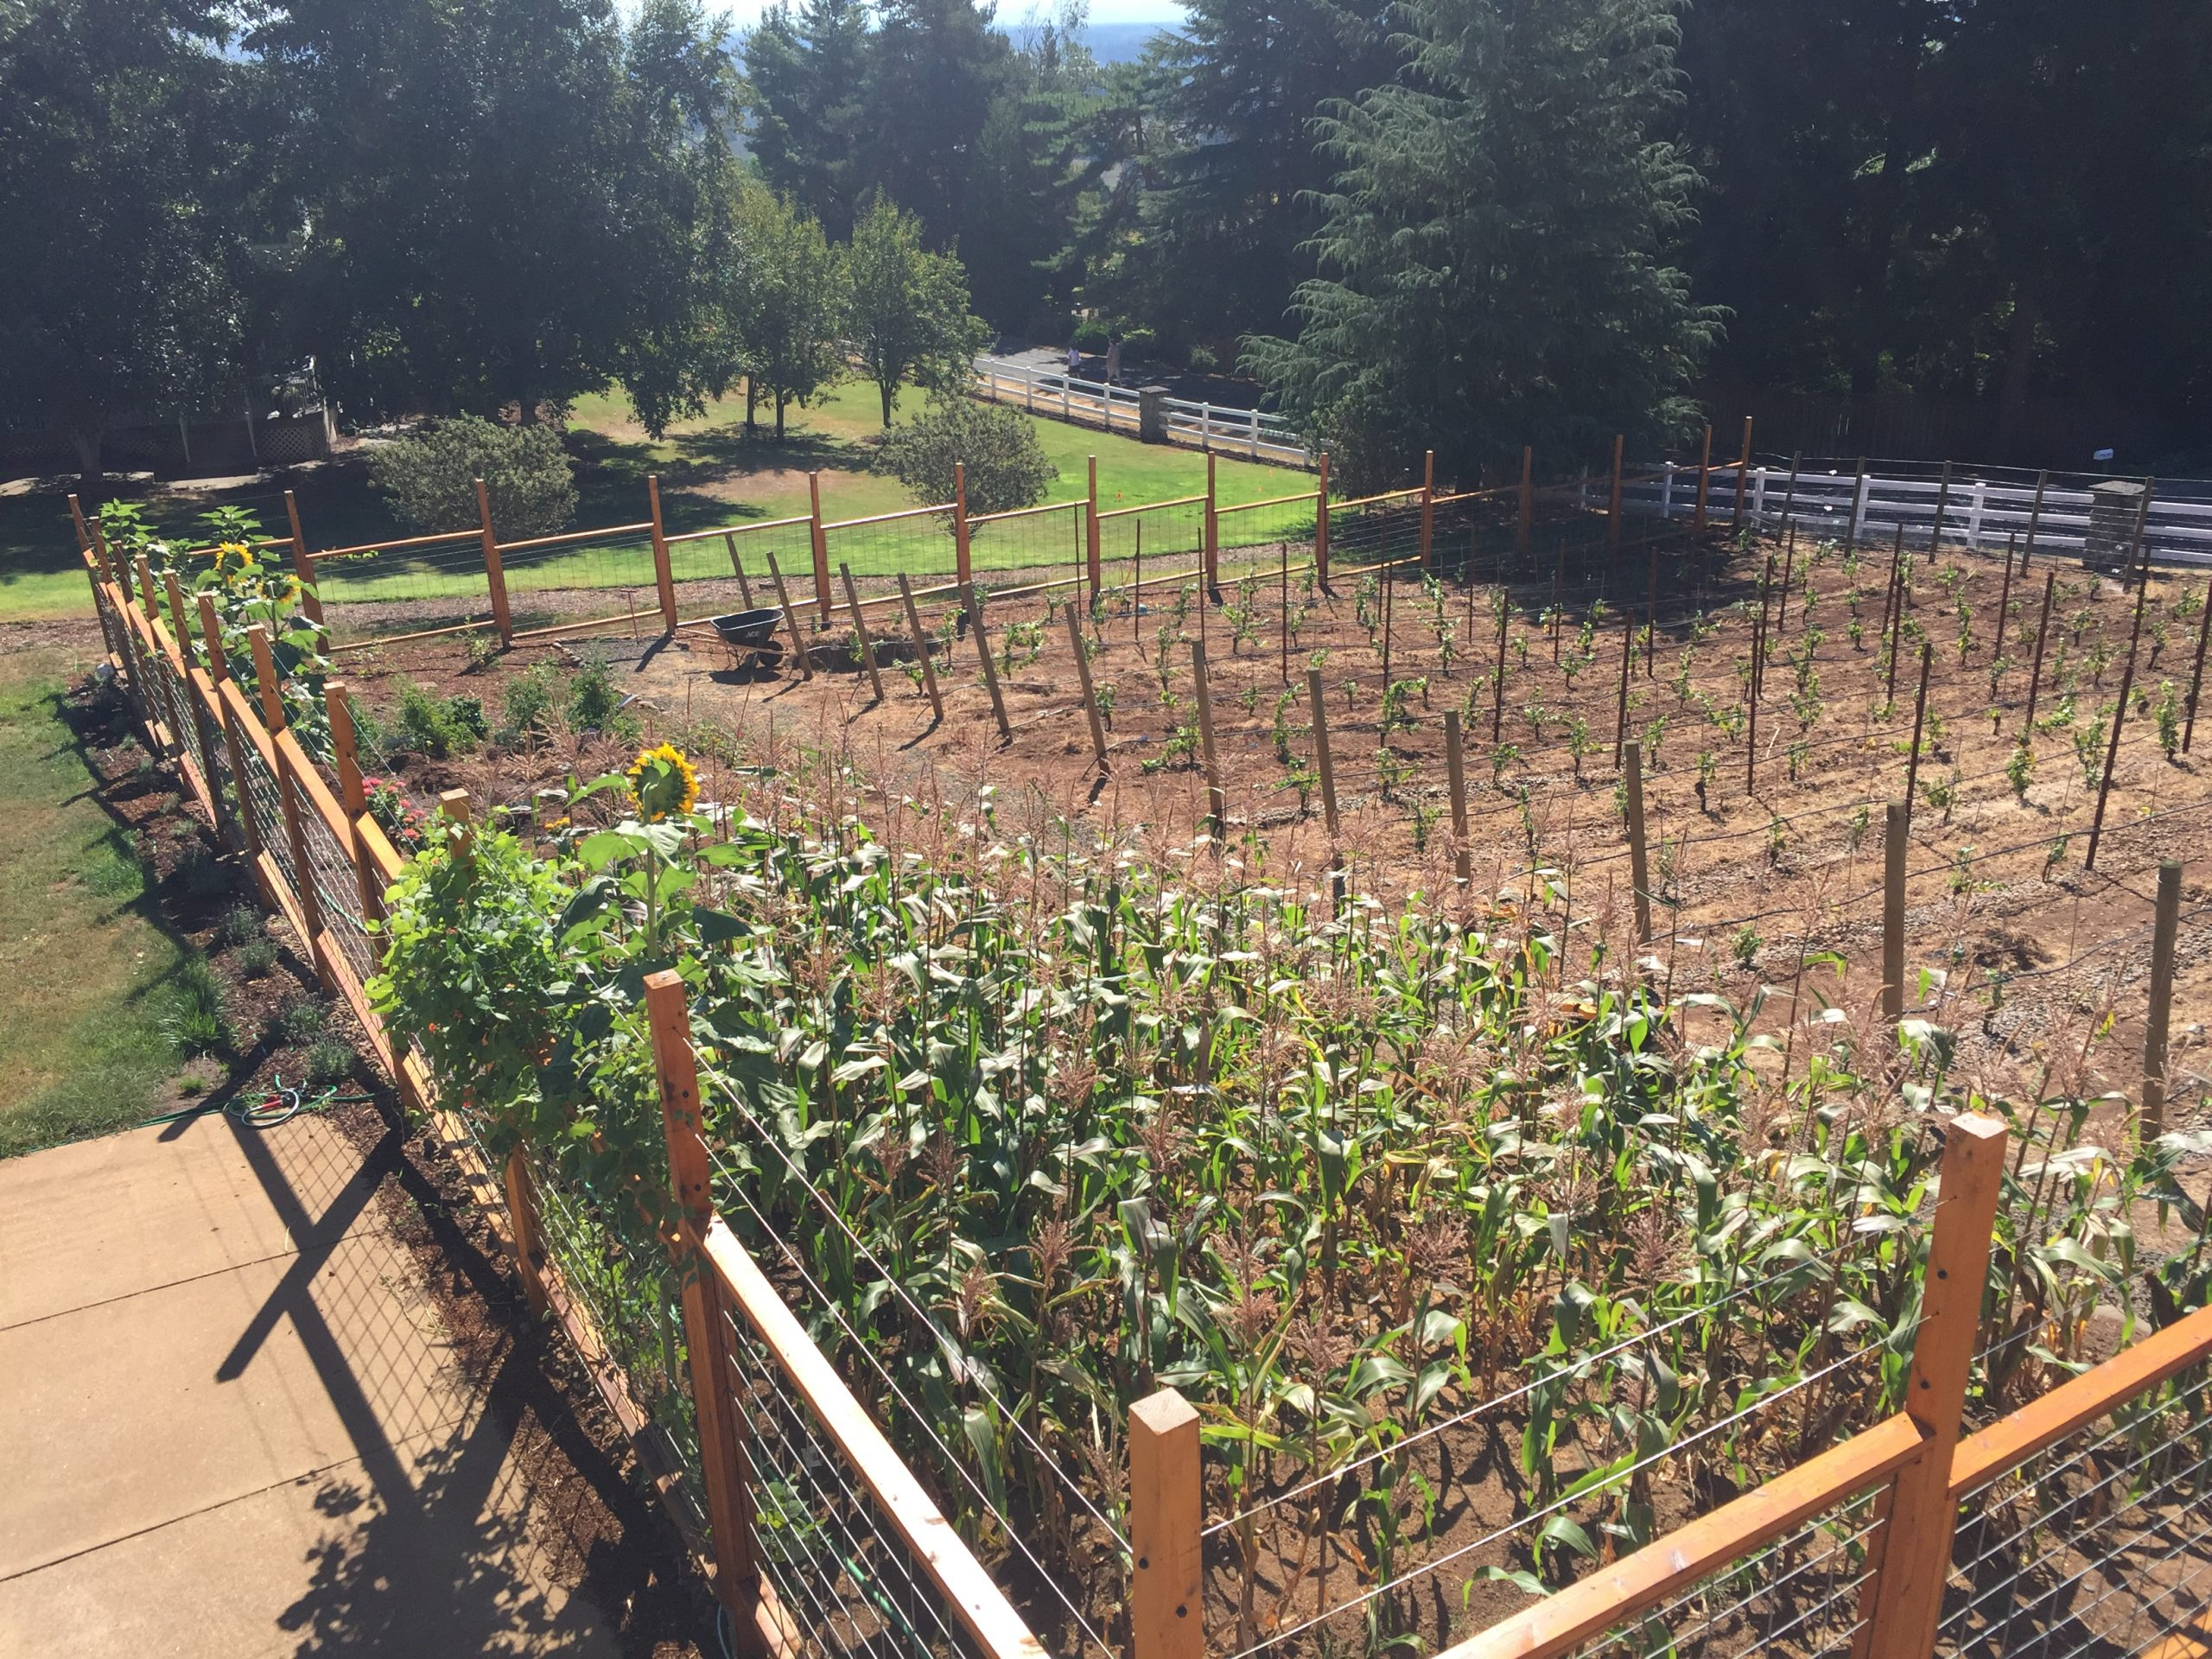 Part 4: So, you want to plant a vineyard?